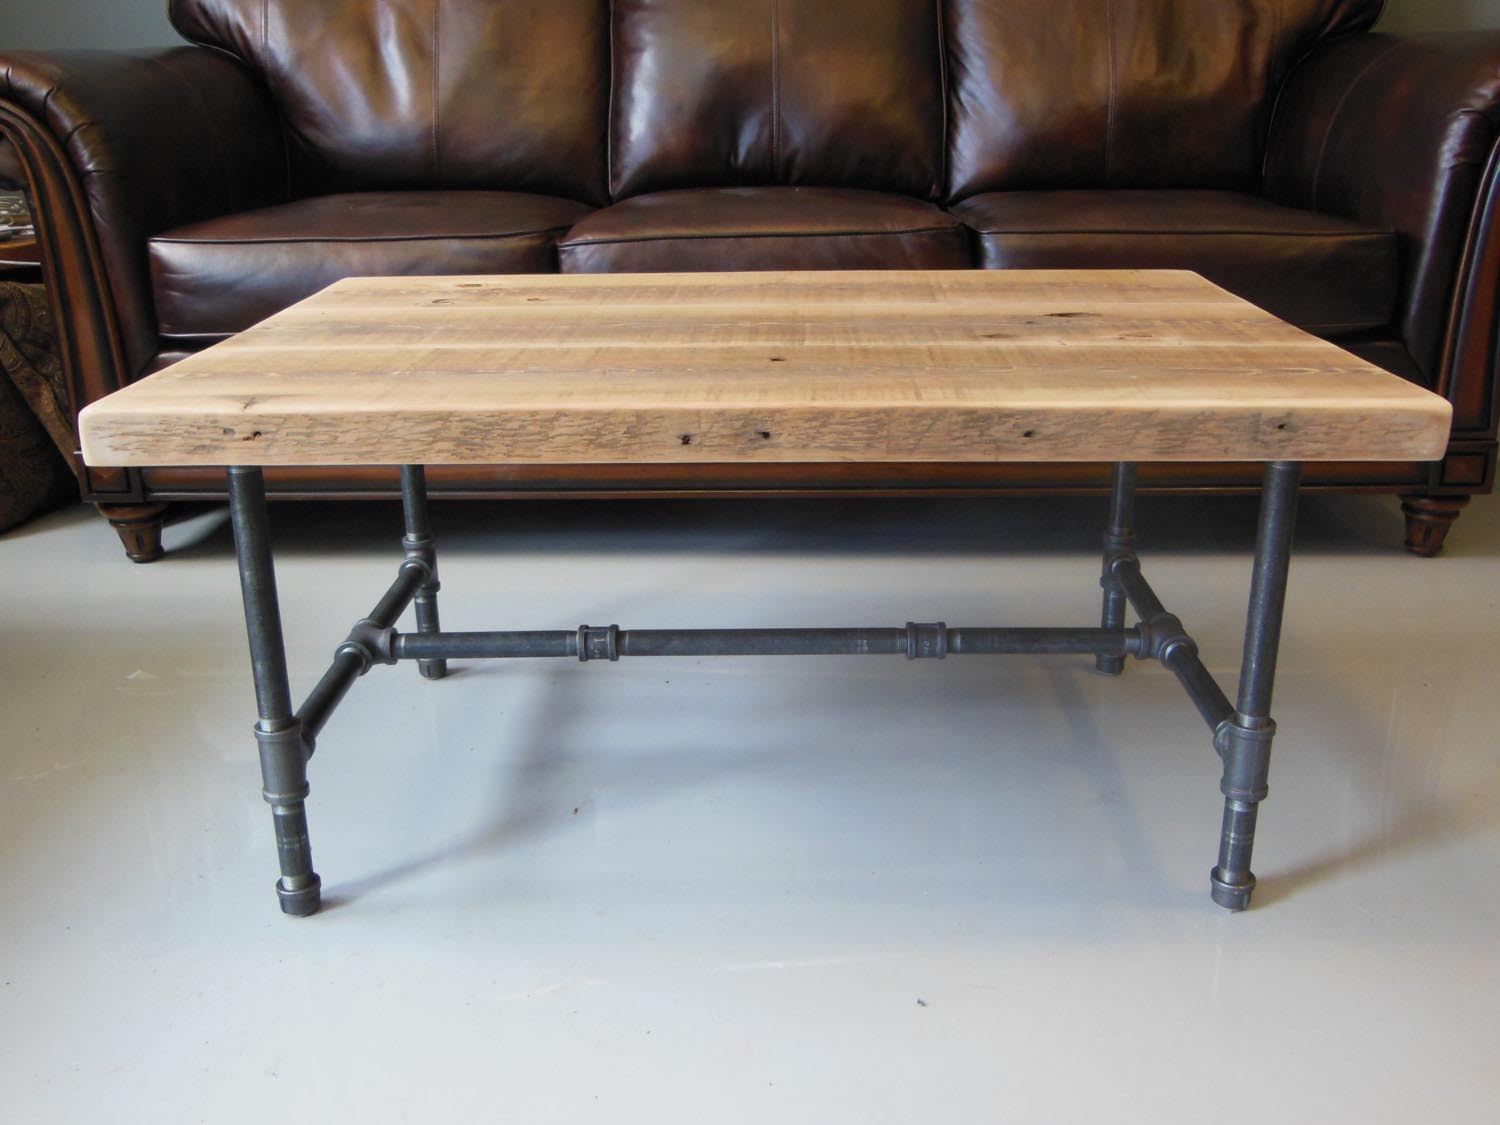 metal legs for coffee table | idi design